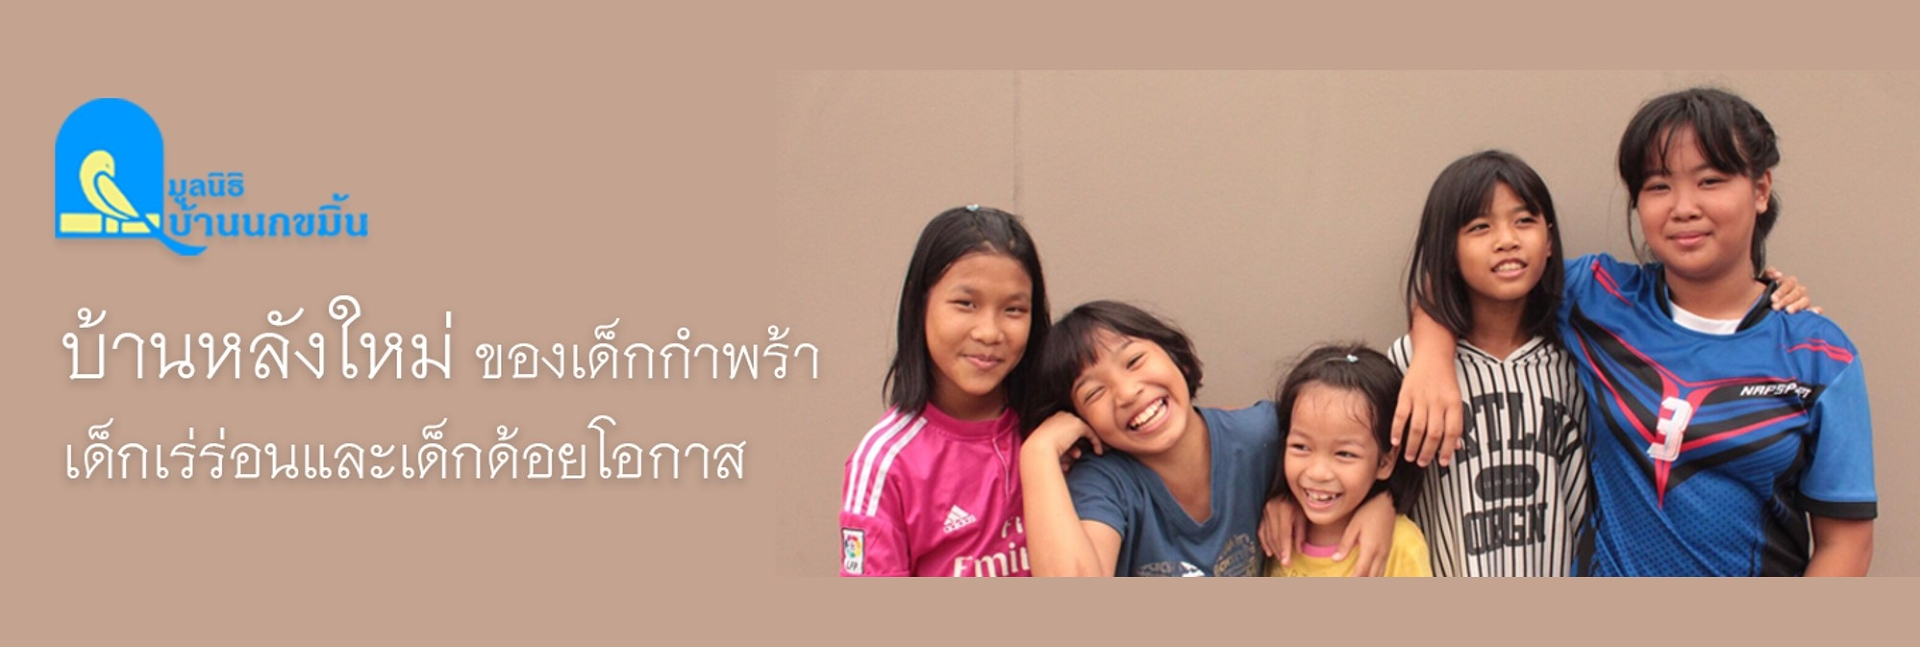 pun-boon-foundation-banner-4